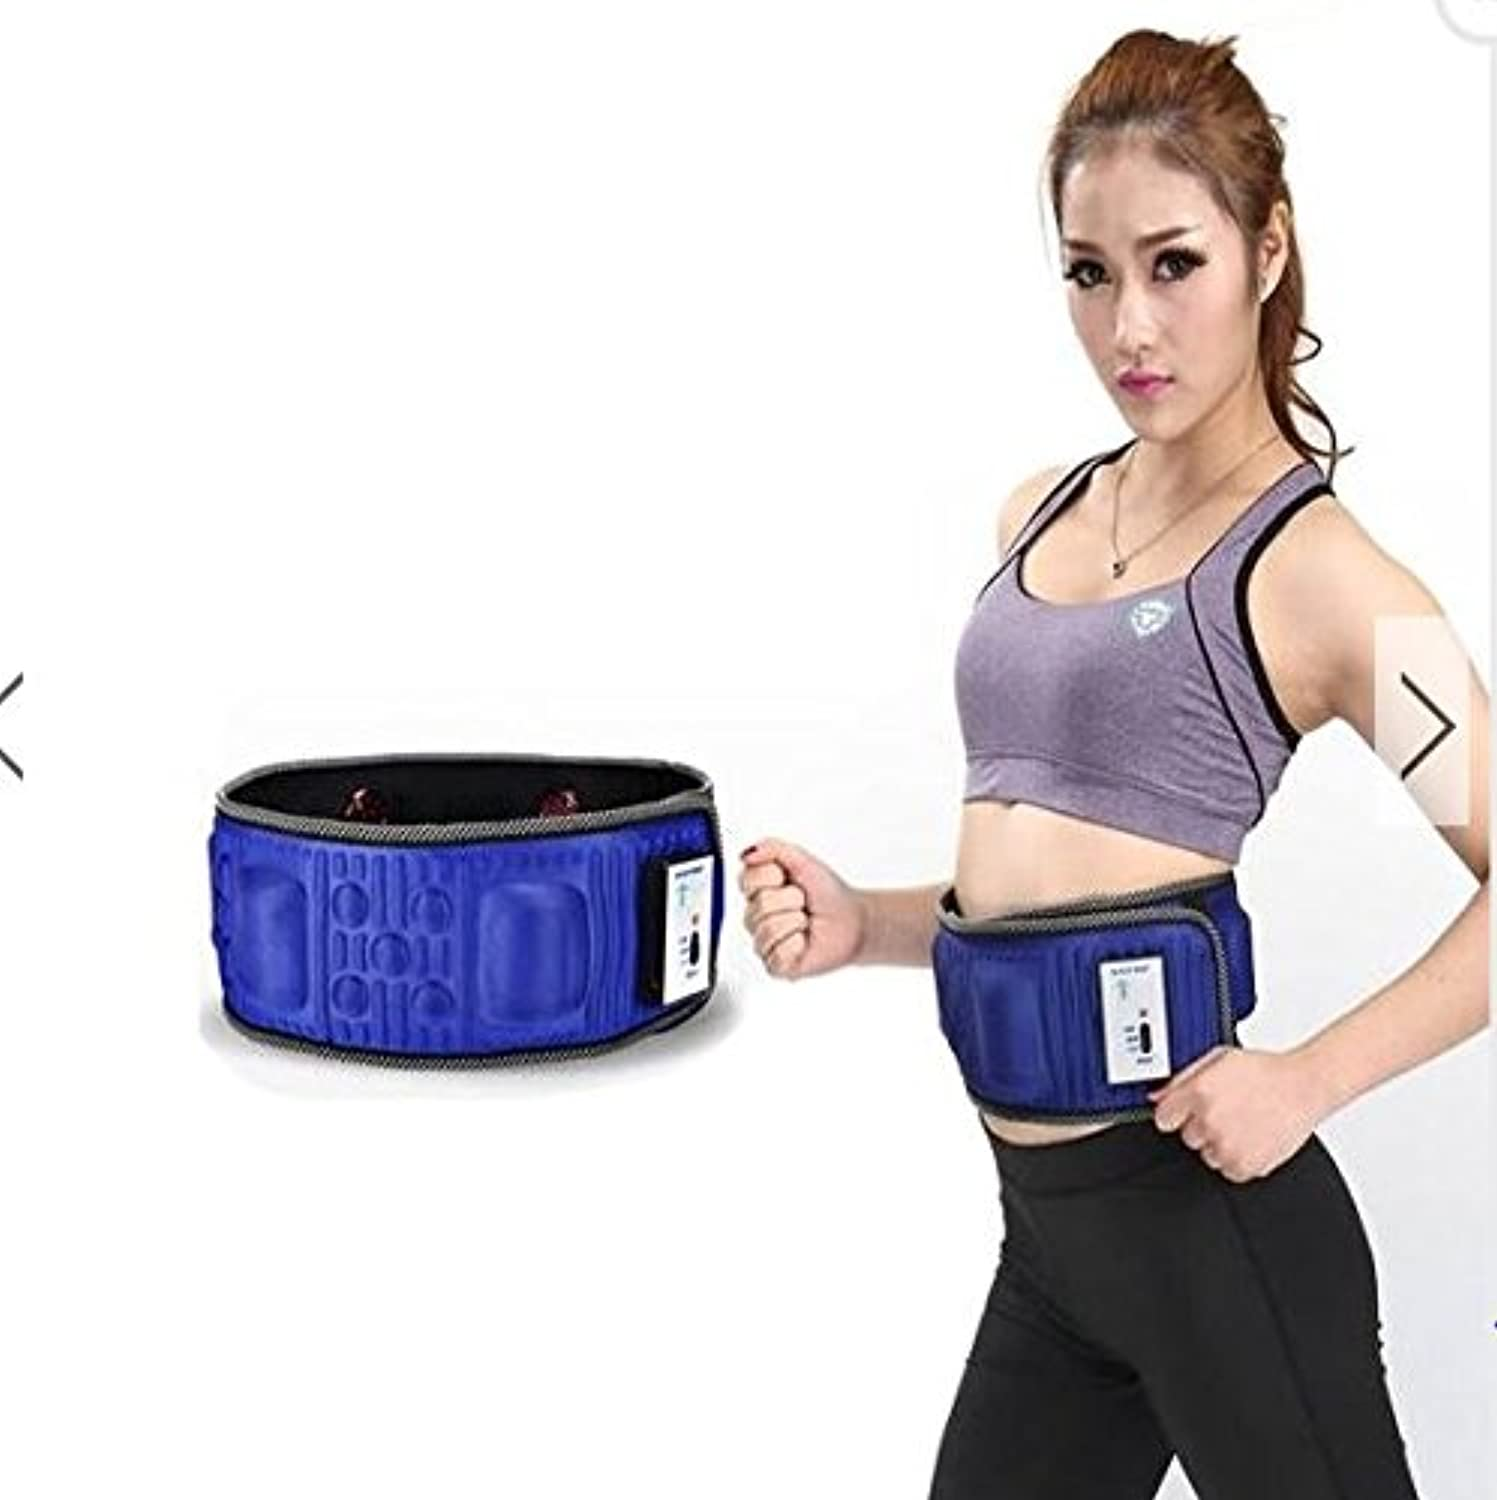 X5 Times Vibration Slimming Massage Rejection Fat Weight Loss Belt by SiamsShop